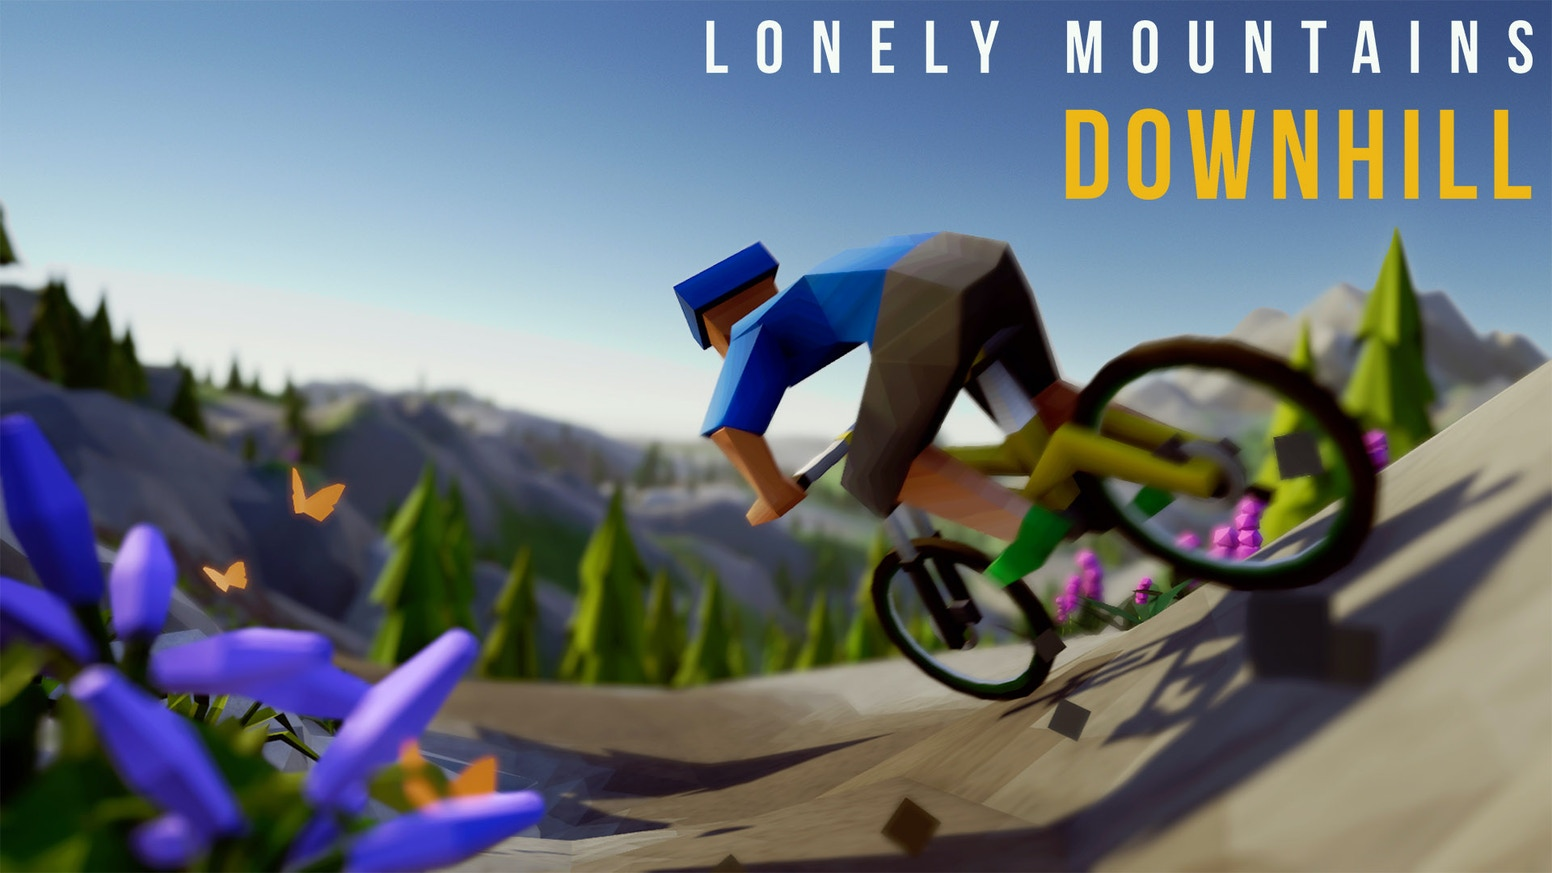 Take your bike and find your own path down unspoiled mountains in this arcade-style mountain biking game for PC and Console coming 2019!